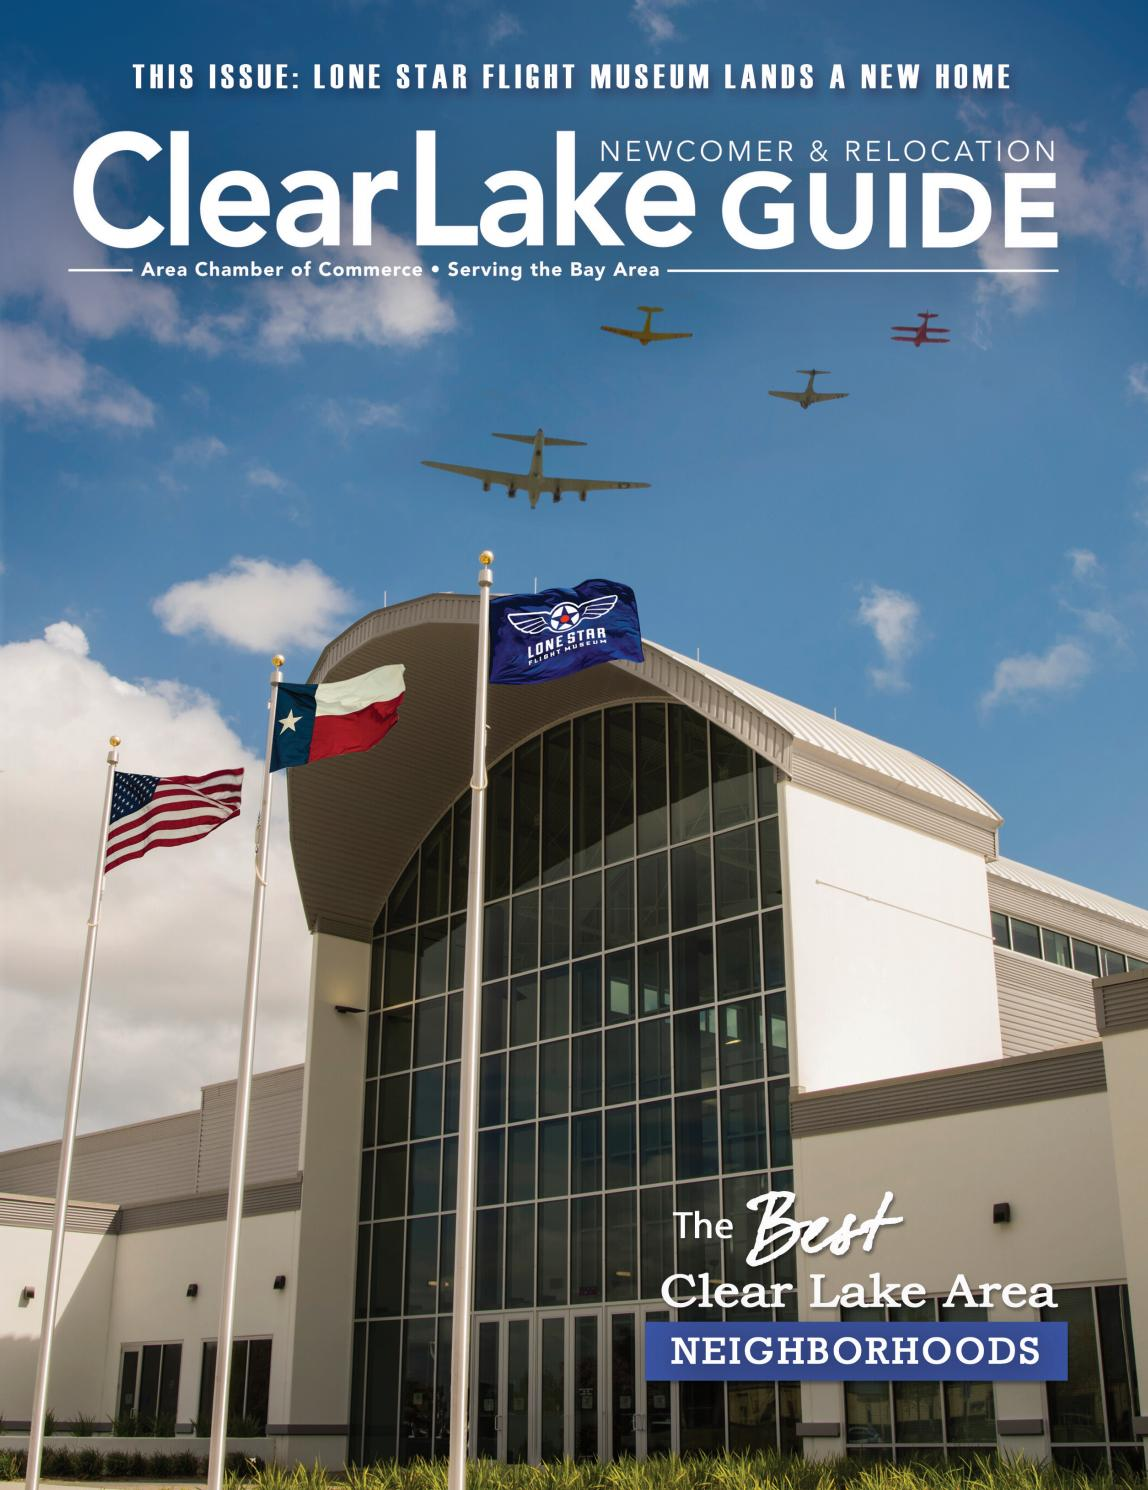 Clear Lake Area Newcomer Guide - 2017 Vol. 1 by WEB Media Group LLC ...